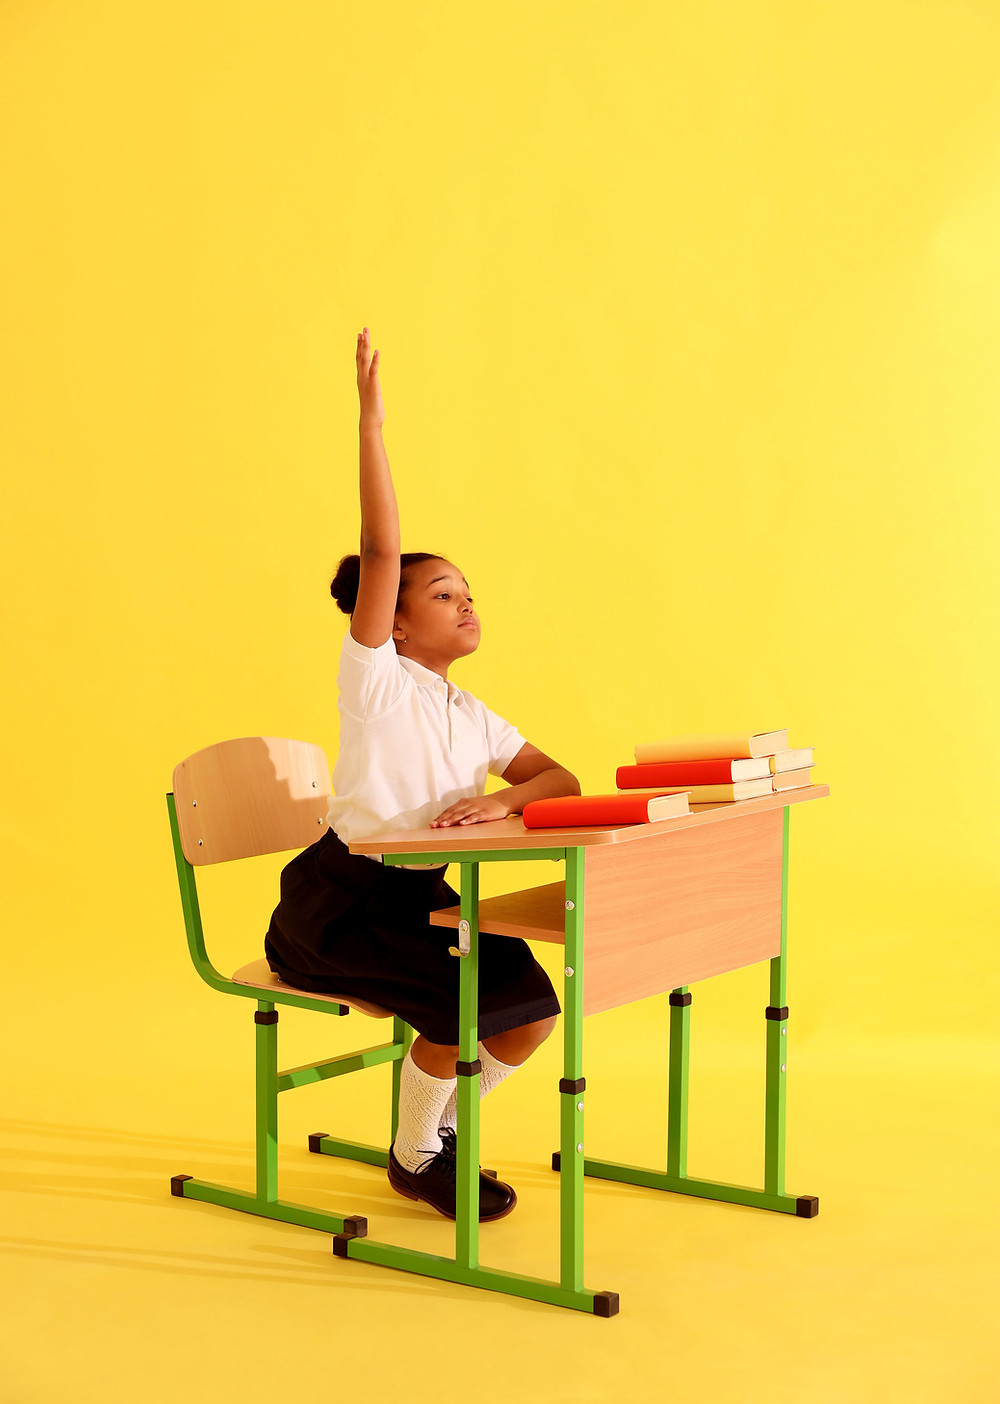 A girl sitting at a desk raising her hand enthusiastically.